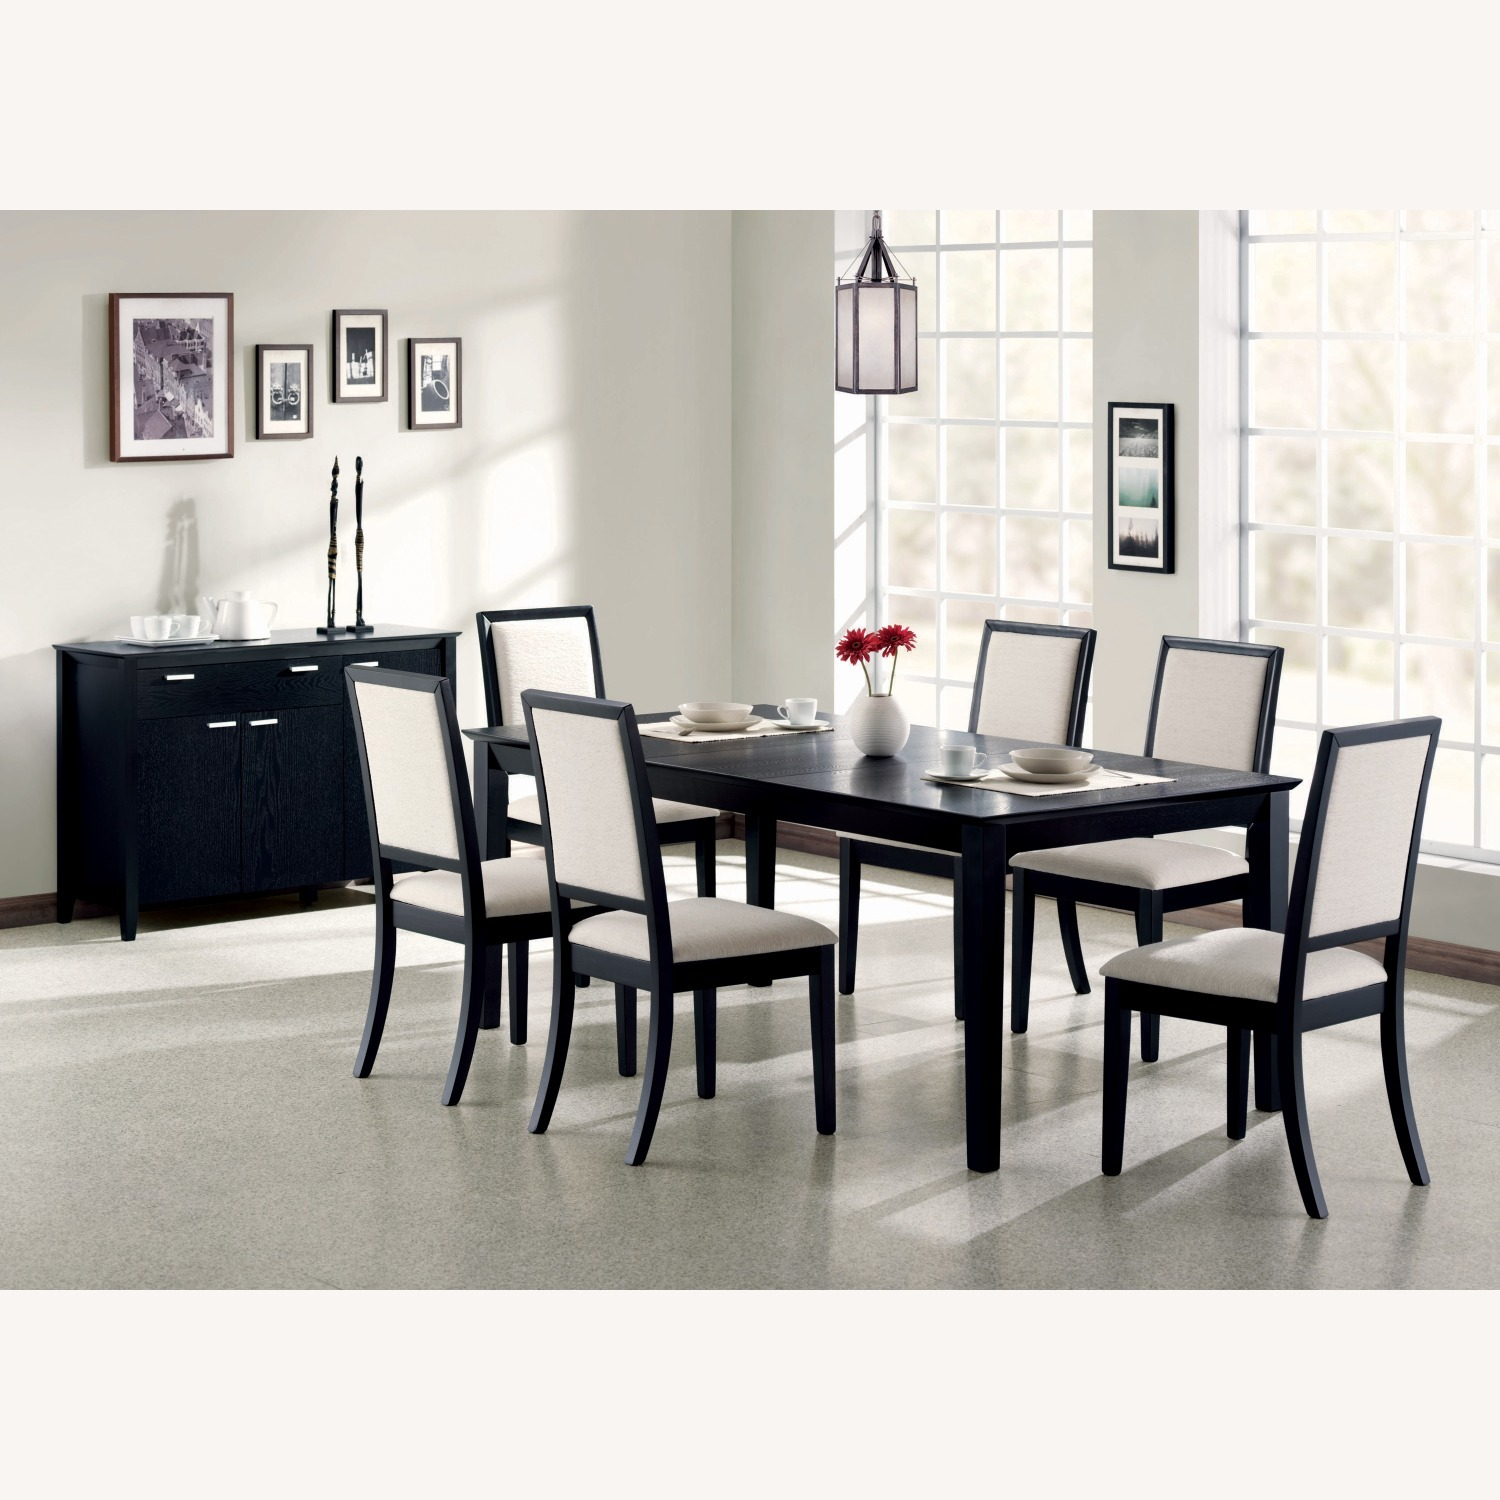 Coaster Fine Black Wood Dining Table with Expandable Leaf - image-2